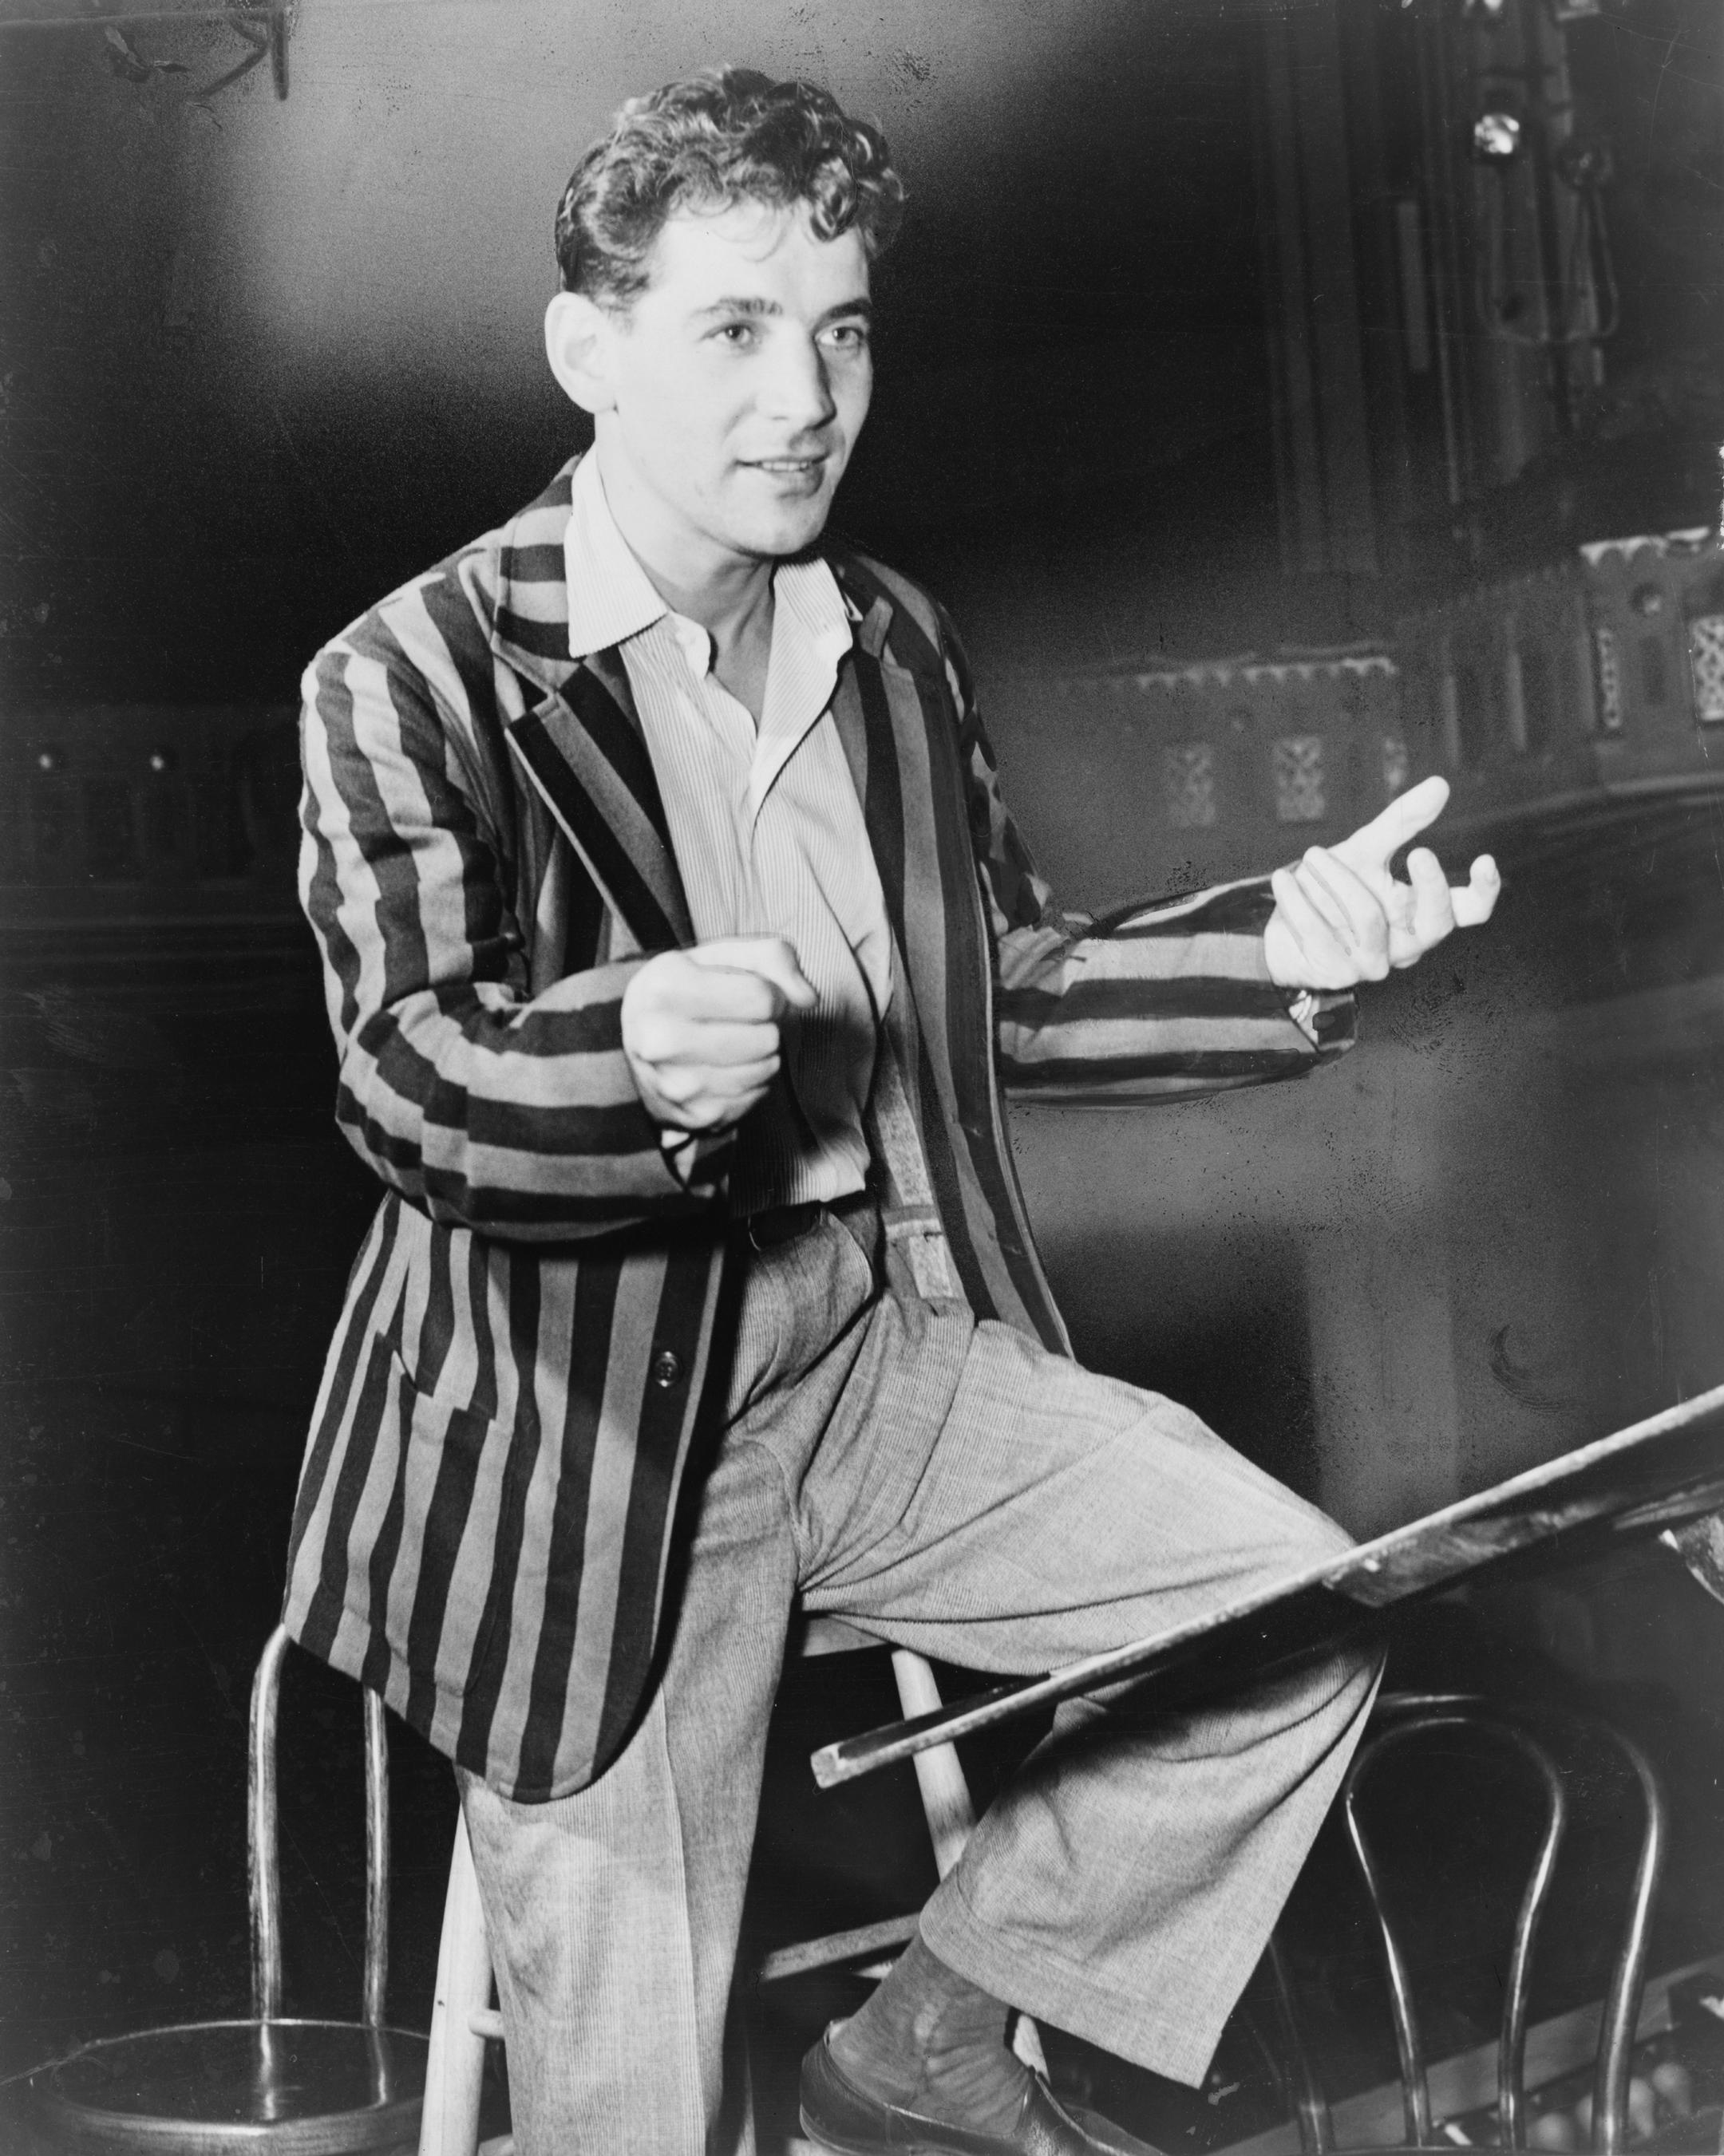 a study of the life of leonard bernstein Get information, facts, and pictures about leonard bernstein at encyclopediacom make research projects and school reports about leonard bernstein easy with credible articles from our free, online encyclopedia and dictionary.